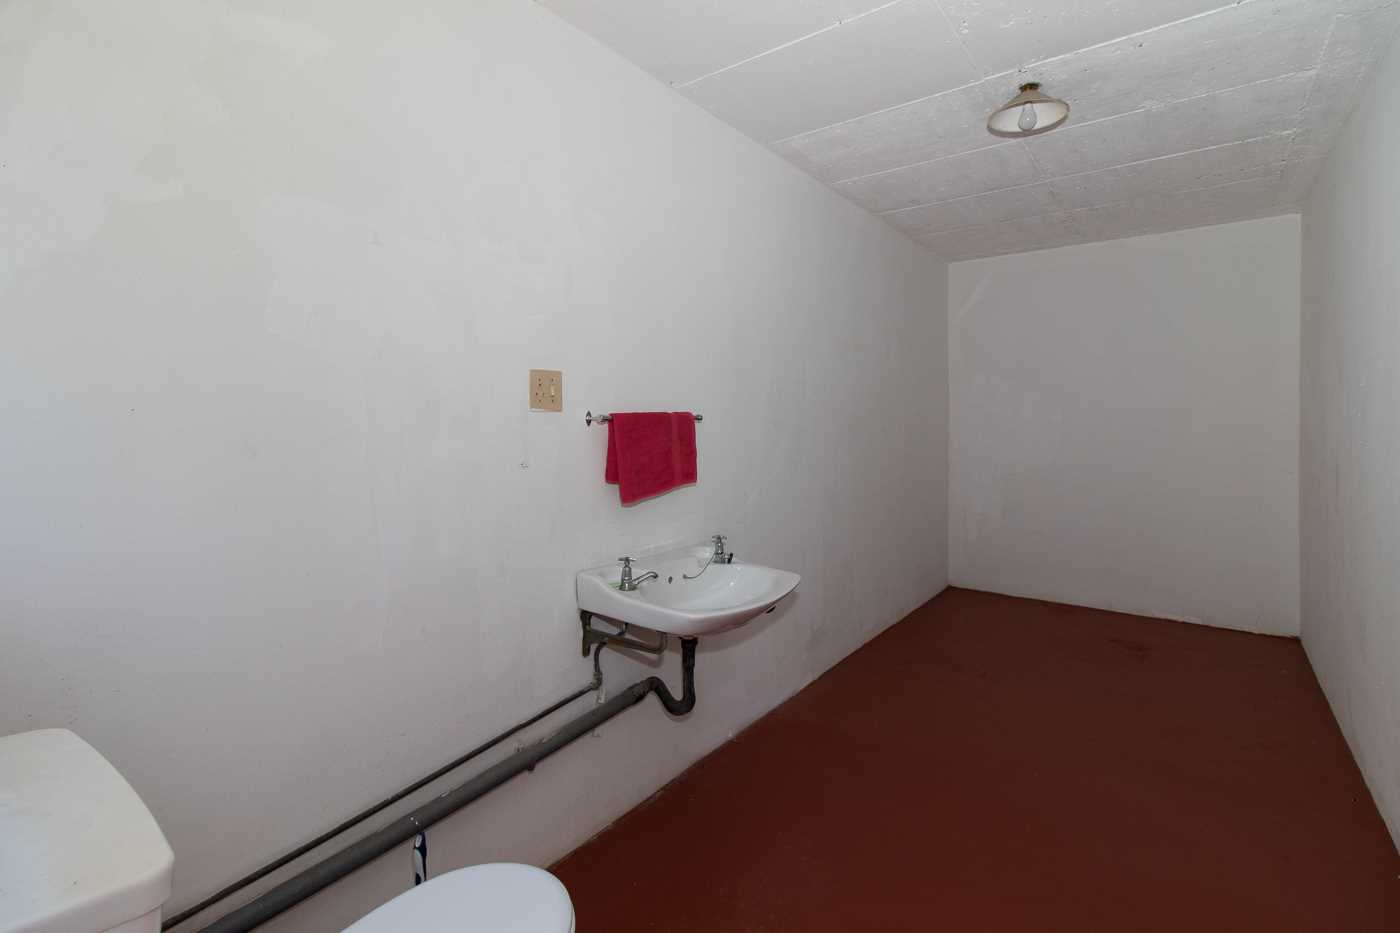 This is one of the outside rooms which has an existing loo and basin